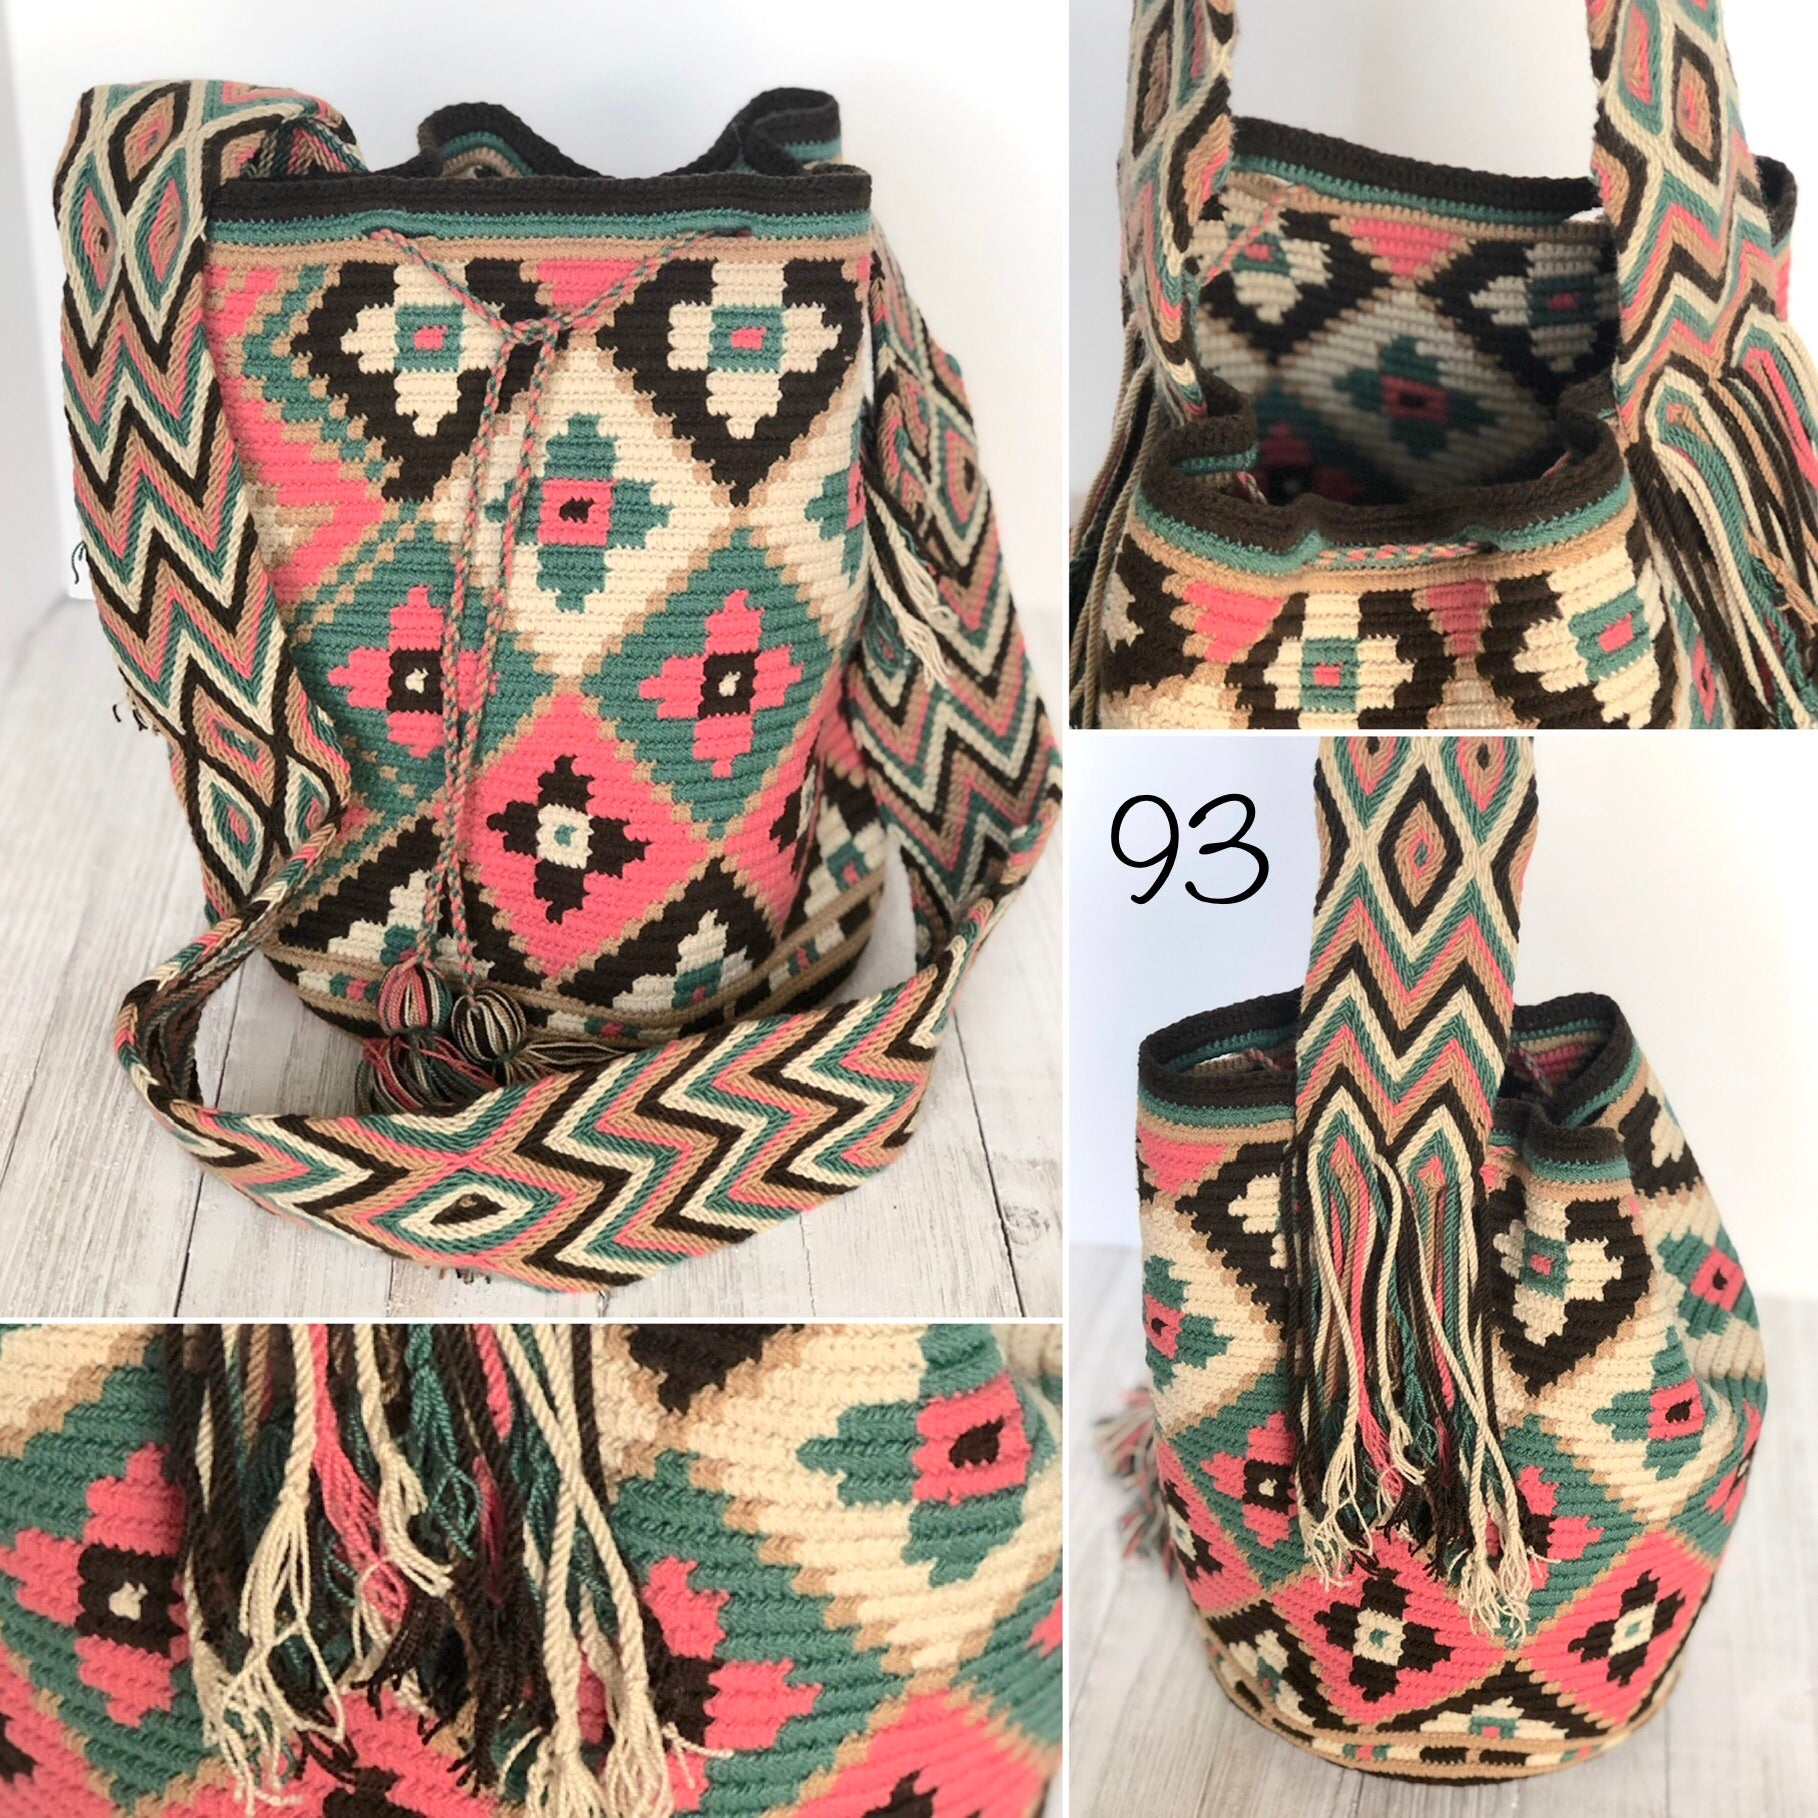 Colorful 4U | Desert Dreams Collection | Crossbody Boho Bags for Fall | Wayuu Mochila | Bohemian Bucket Bag 93- cute flowers